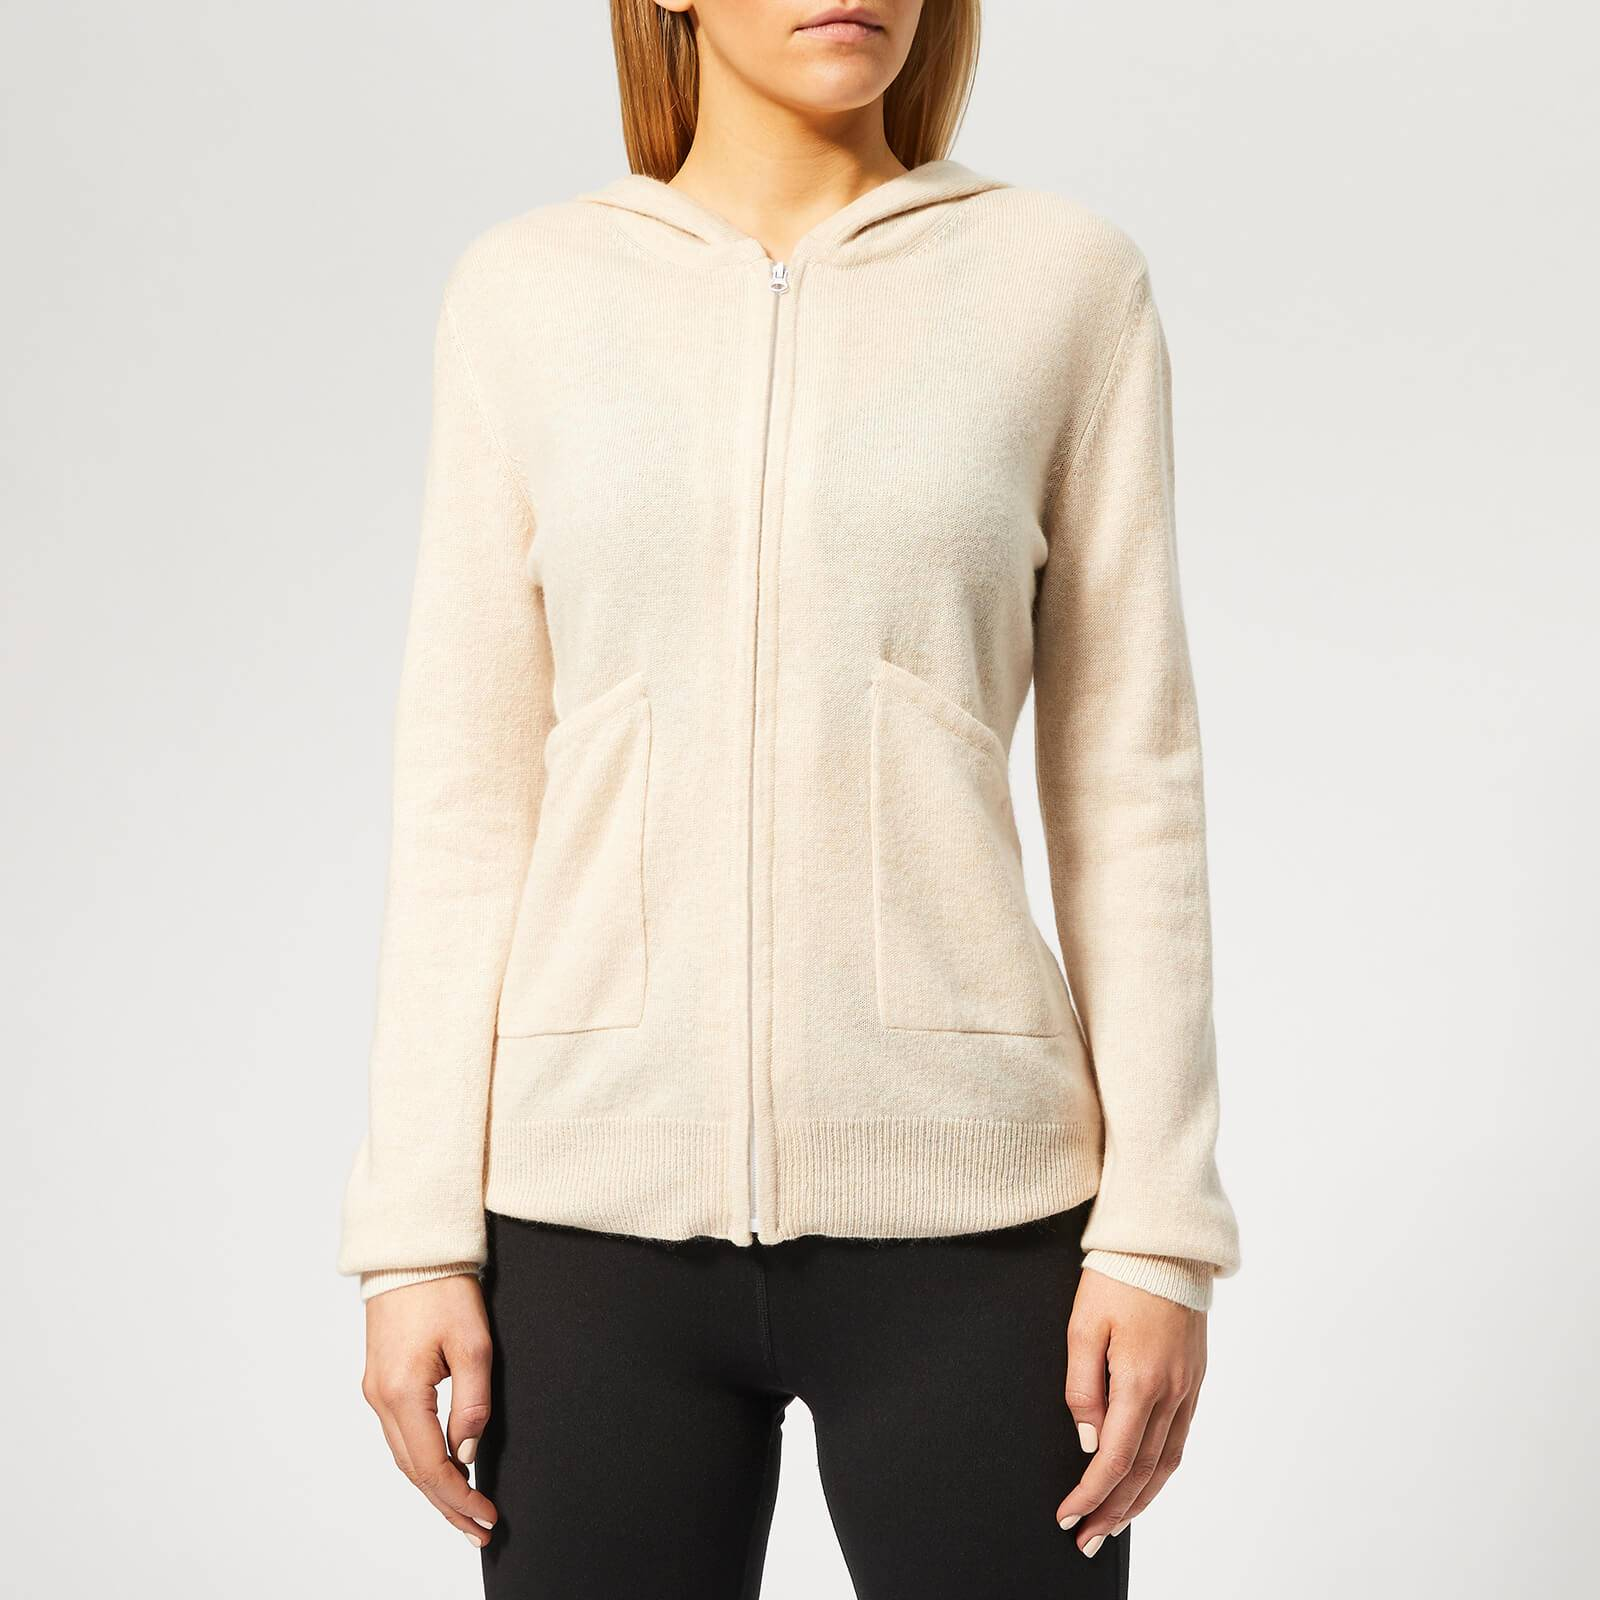 Pepper & Mayne Women's Exclusive Cashmere Apres Sport Hoody - Creme Brulee - S - Cream